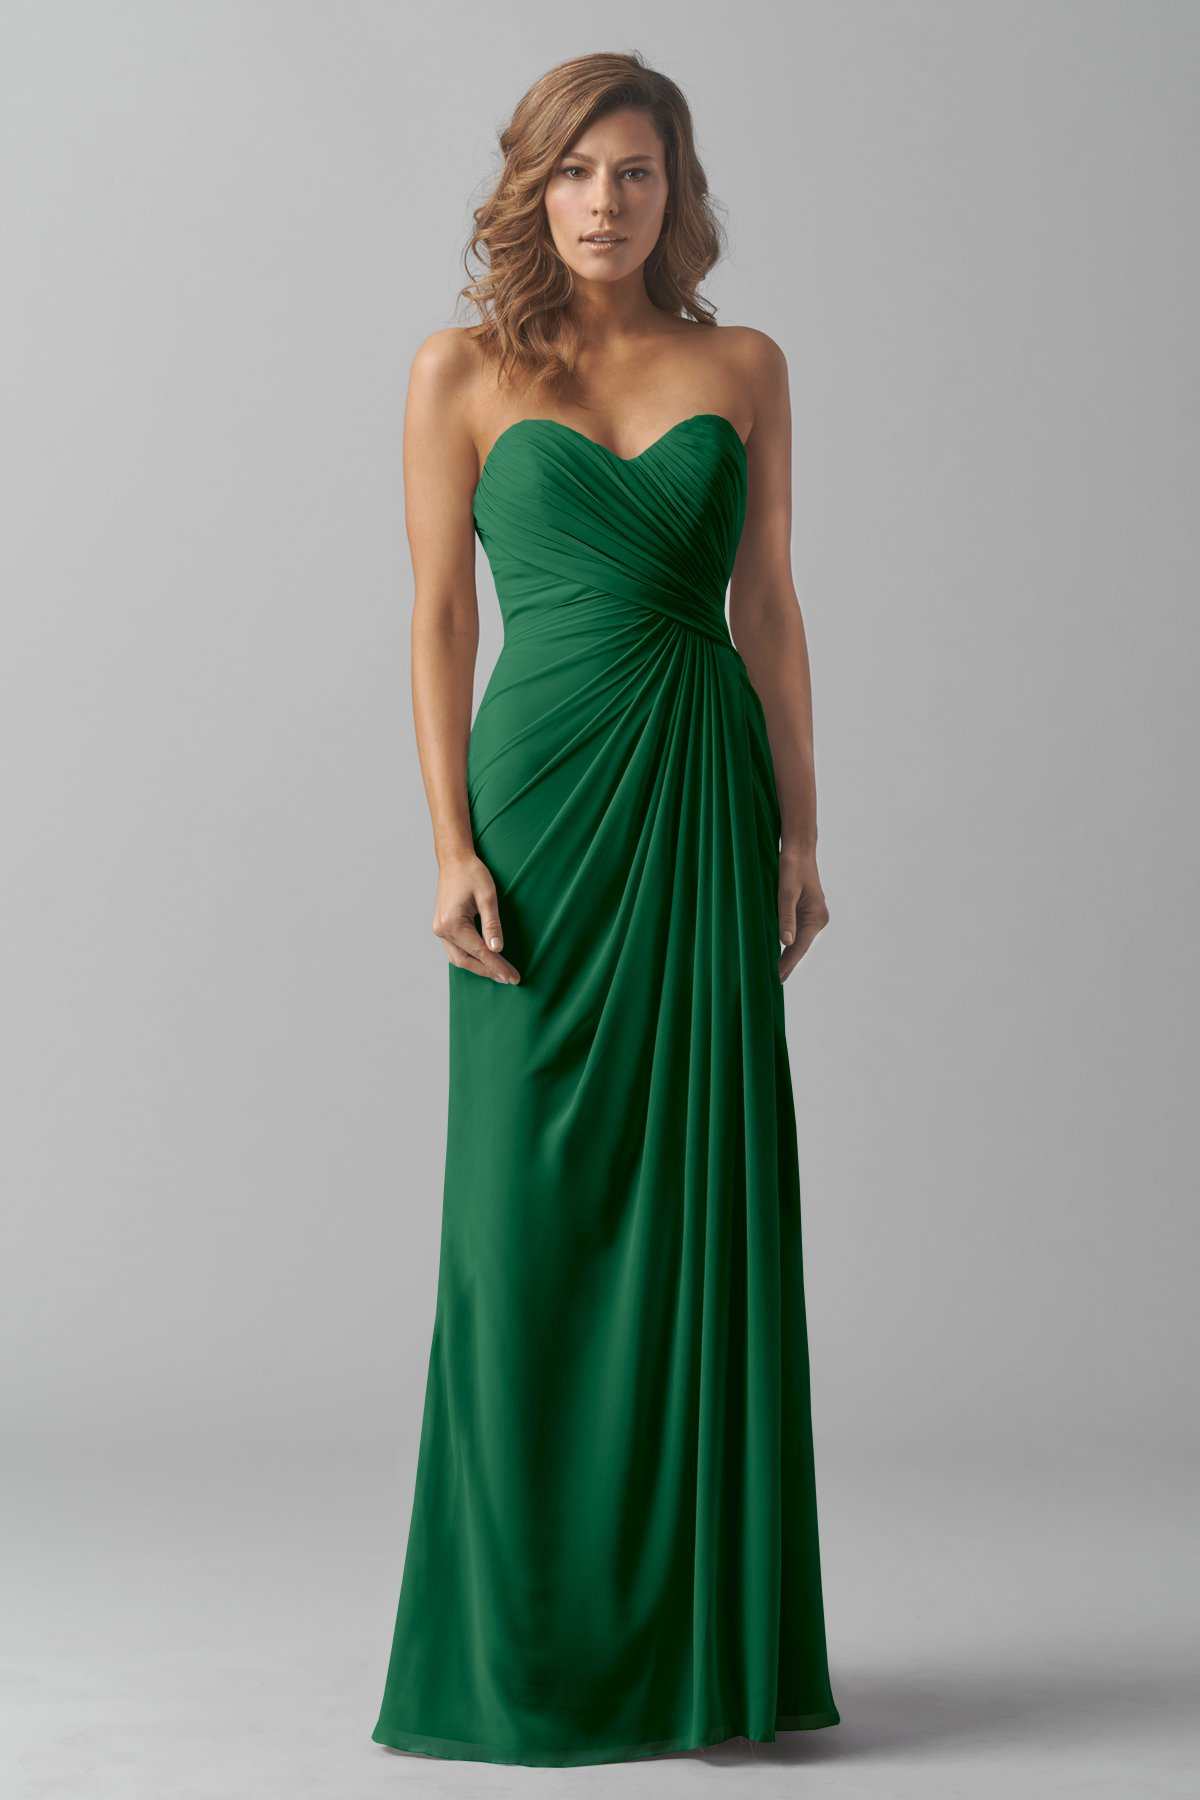 Emerald Green Seath Long Sweetheart Bridesmaid Dress